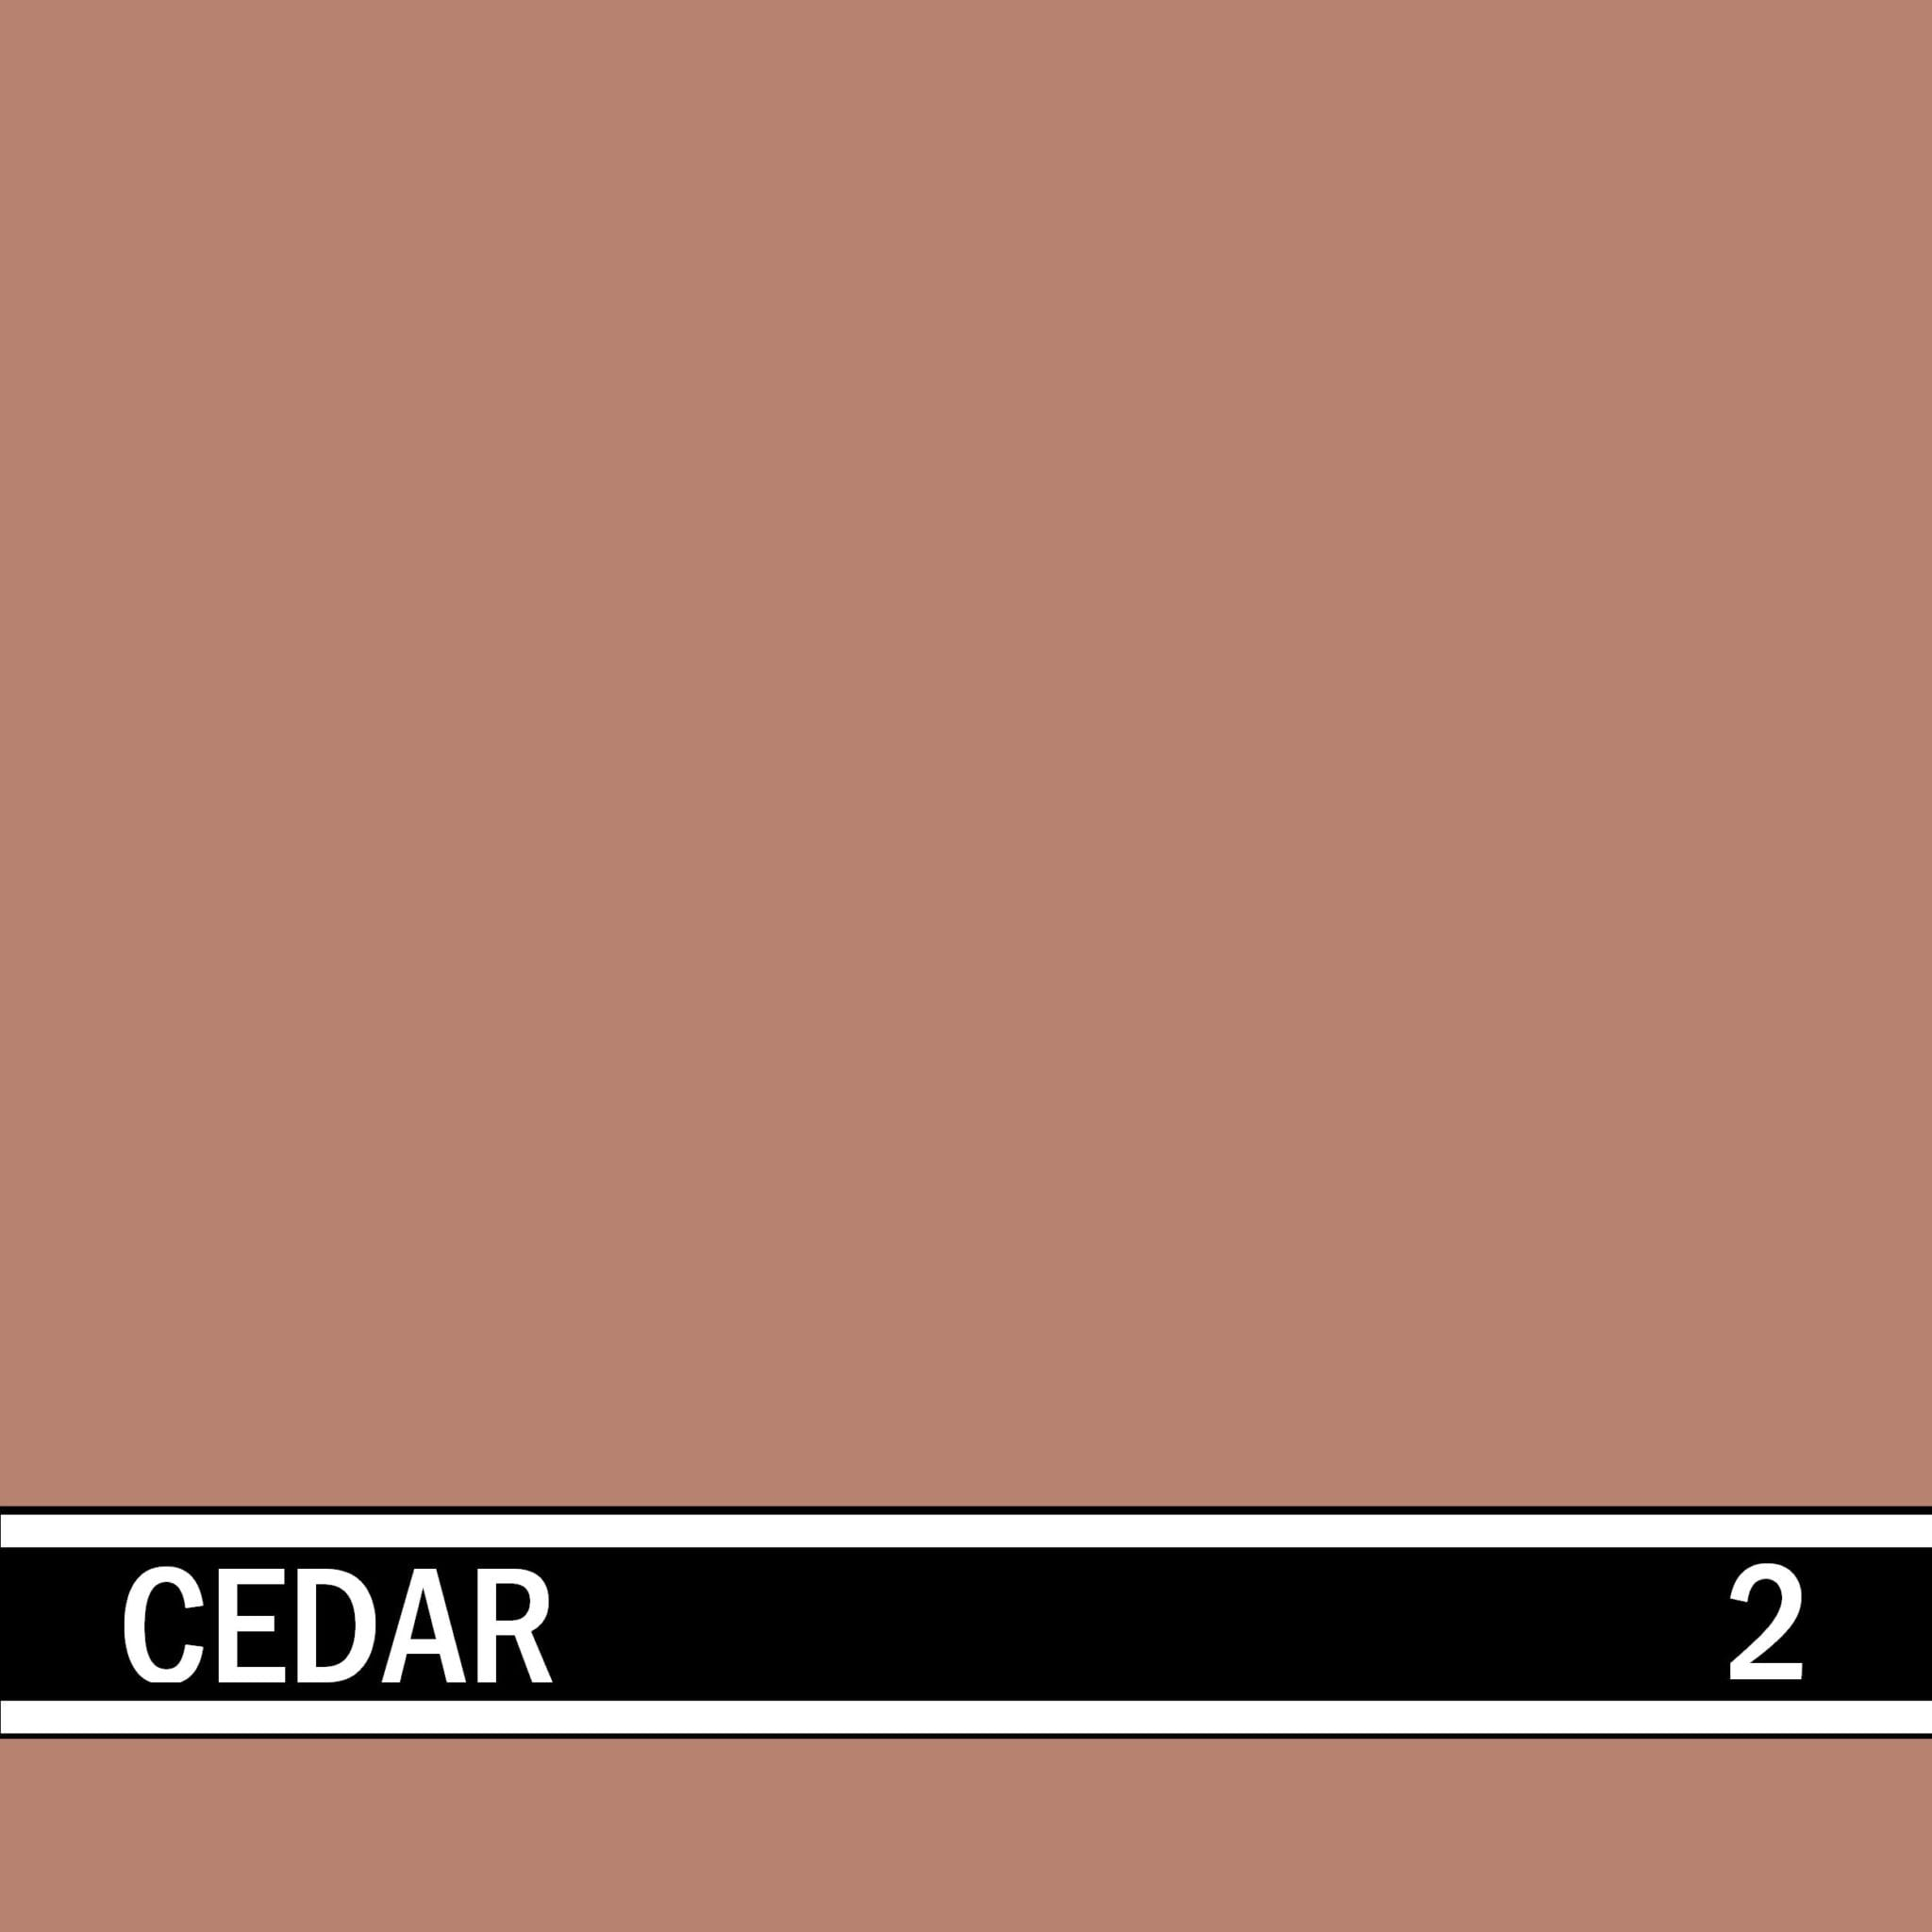 Cedar integral concrete color for stamped concrete and decorative colored concrete